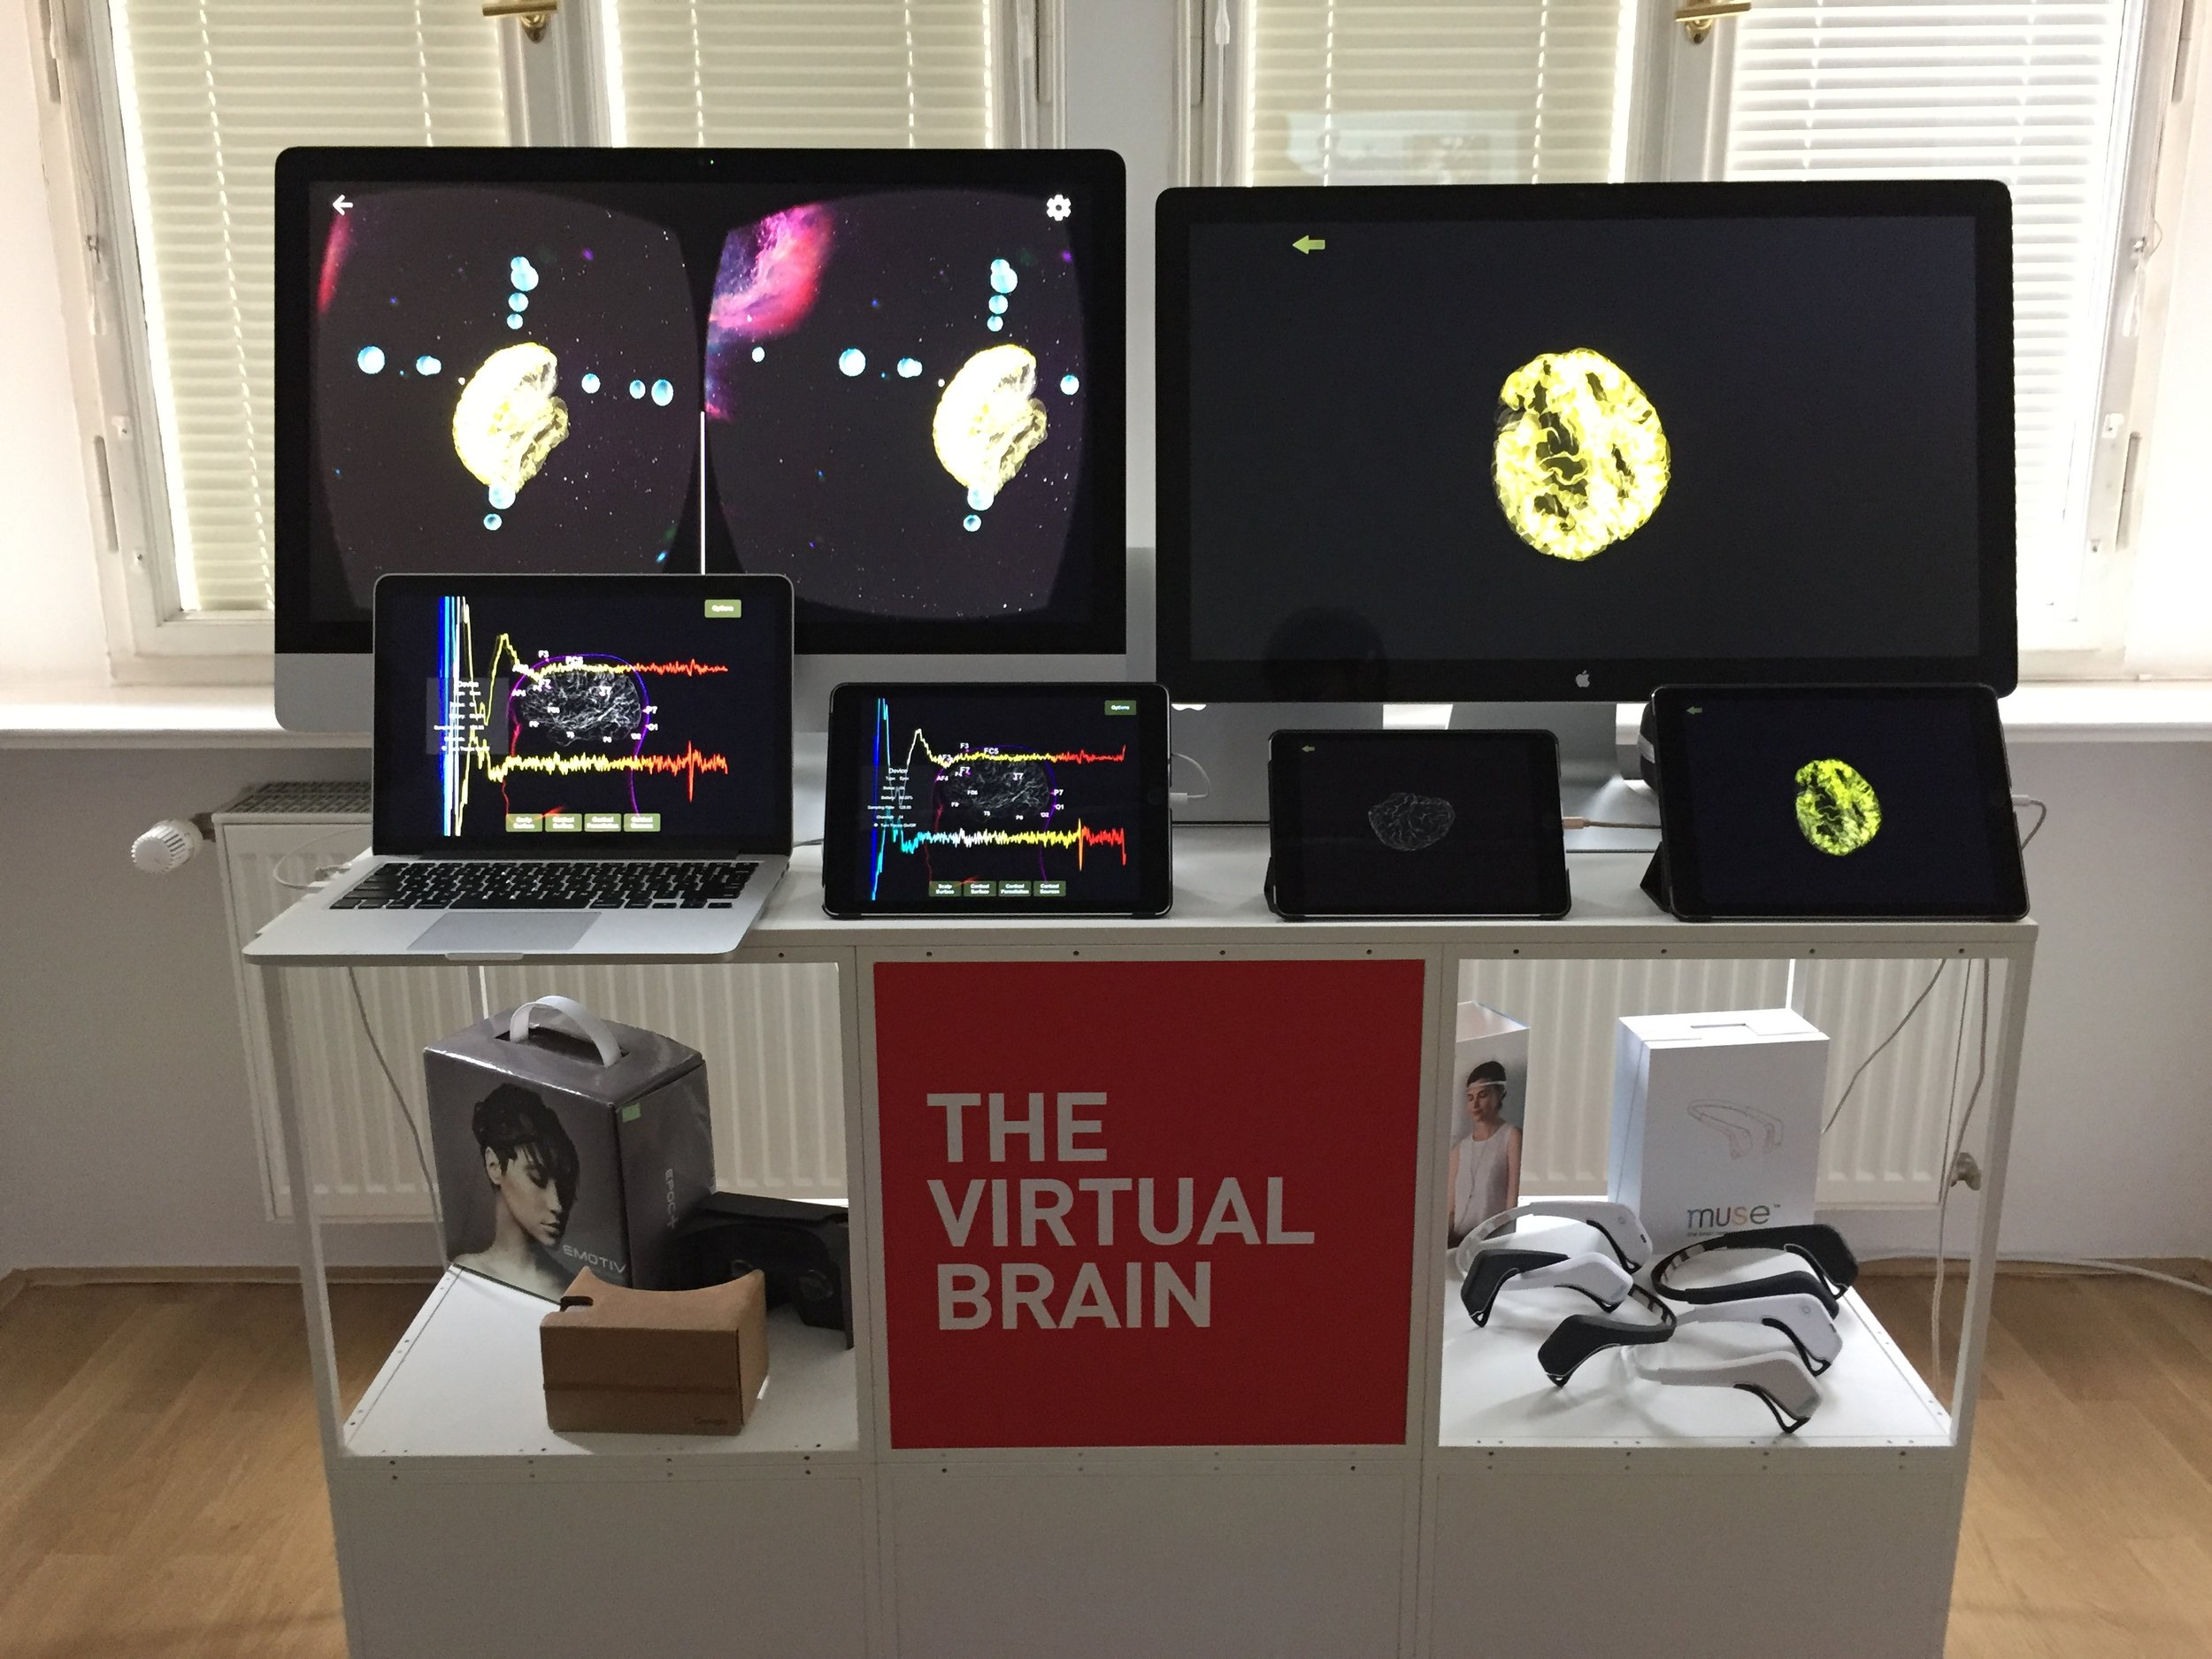 BrainModes real time mobile applications powered by The Virtual Brain on display at the Opening of the new Einstein Centre.